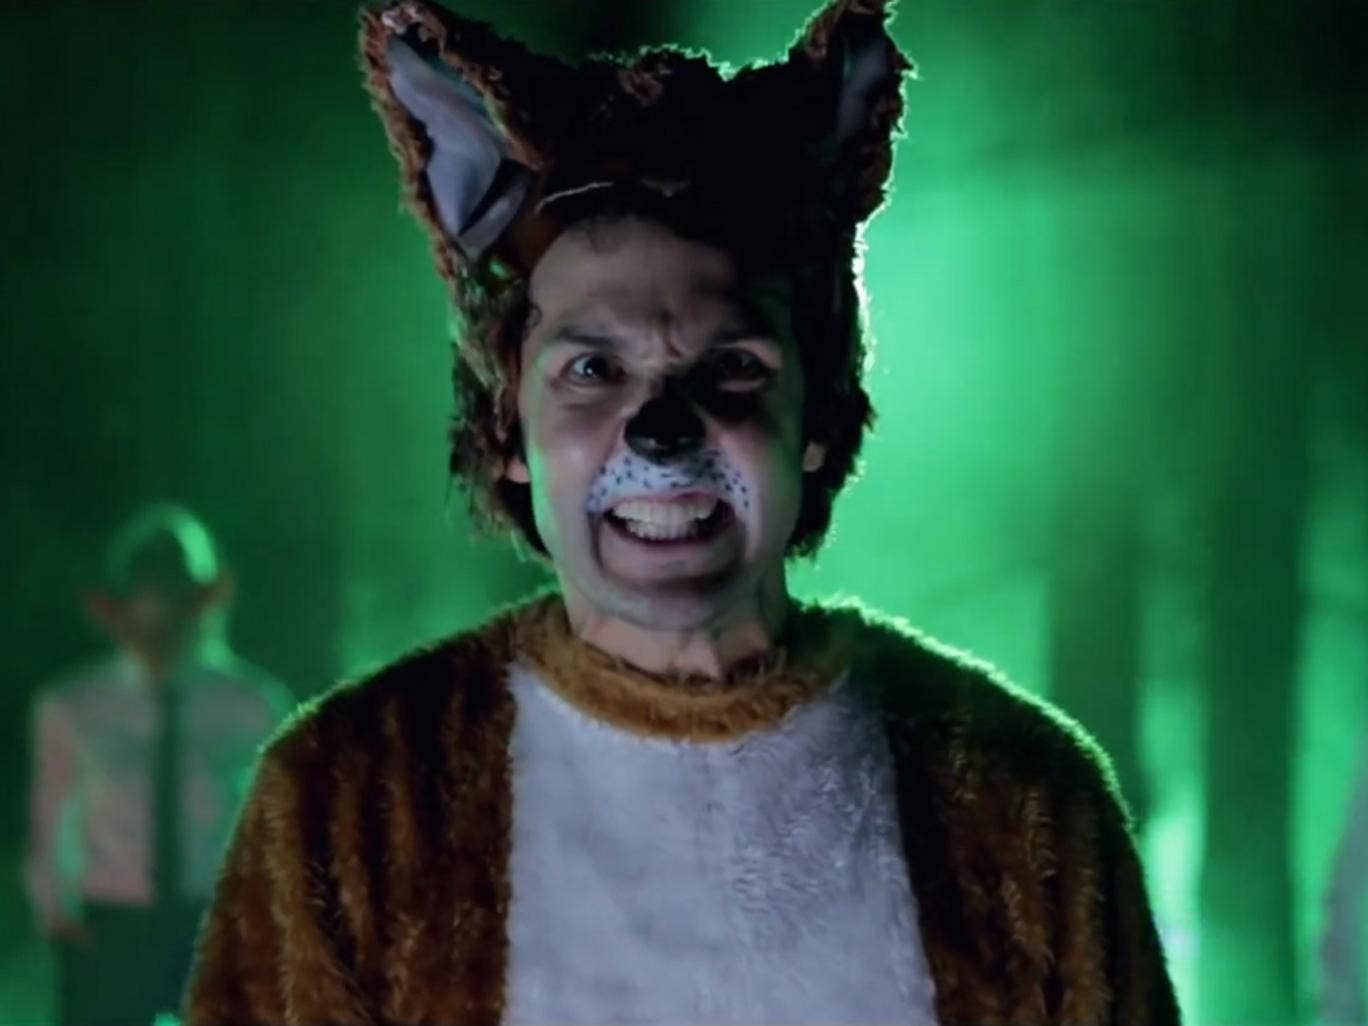 """The video for Ylvis's """"The Fox (What Does the Fox Say)"""" has been viewed over a quarter of a billion times since being uploaded in September."""